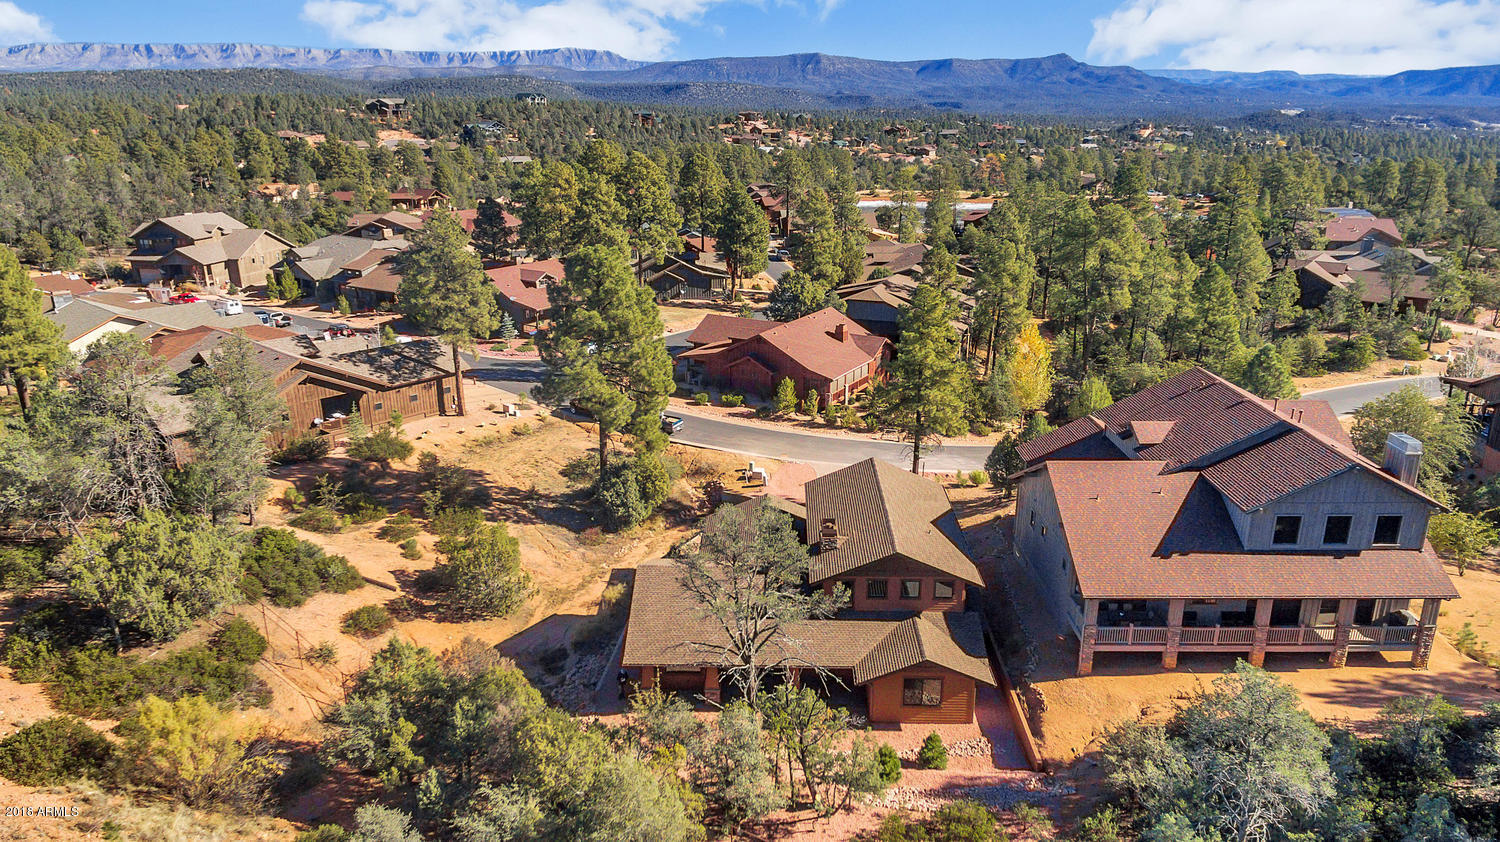 MLS 5812925 912 N AUTUMN SAGE Court, Payson, AZ Payson AZ Golf